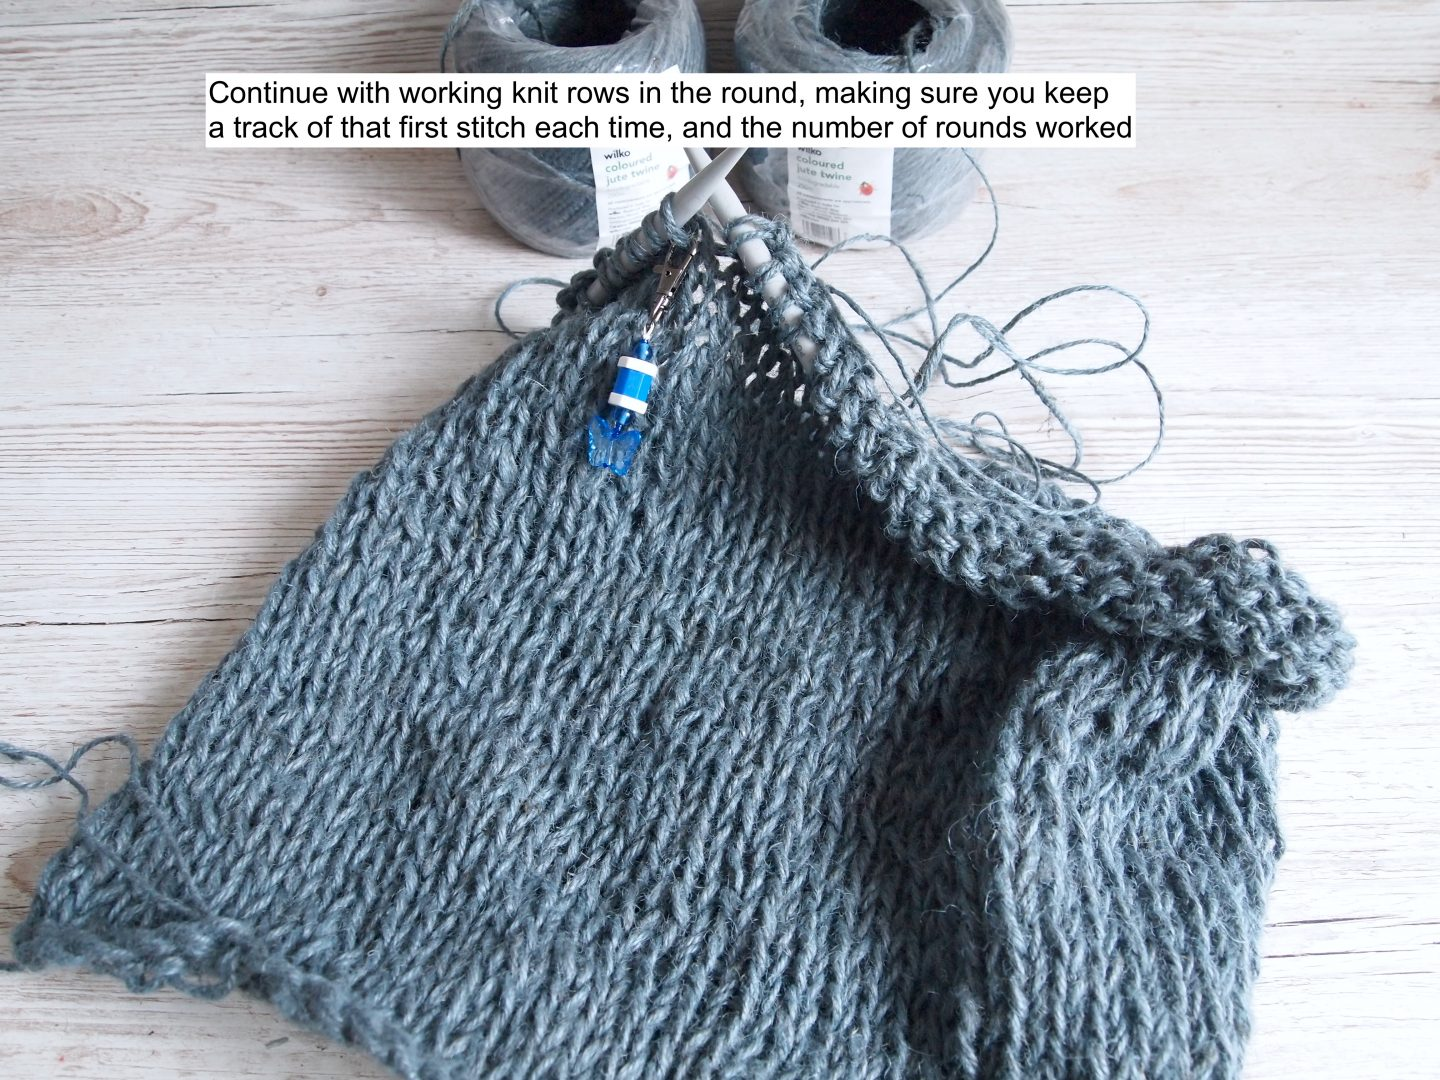 working in rounds with knitting